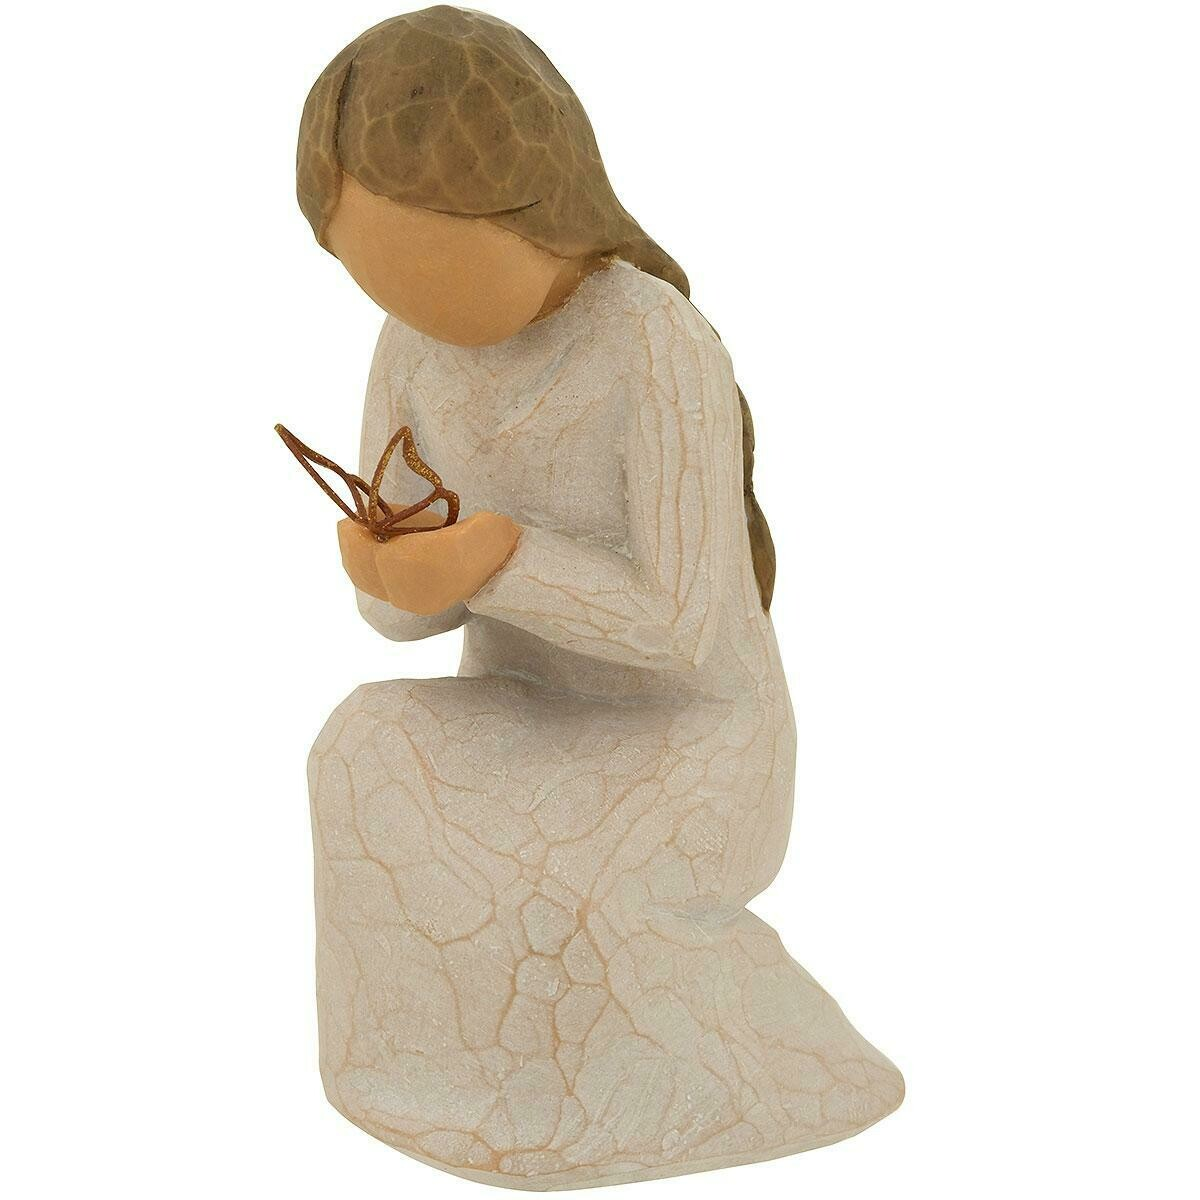 Willow Tree: Quiet Wonder, young girl kneeling with butterfly